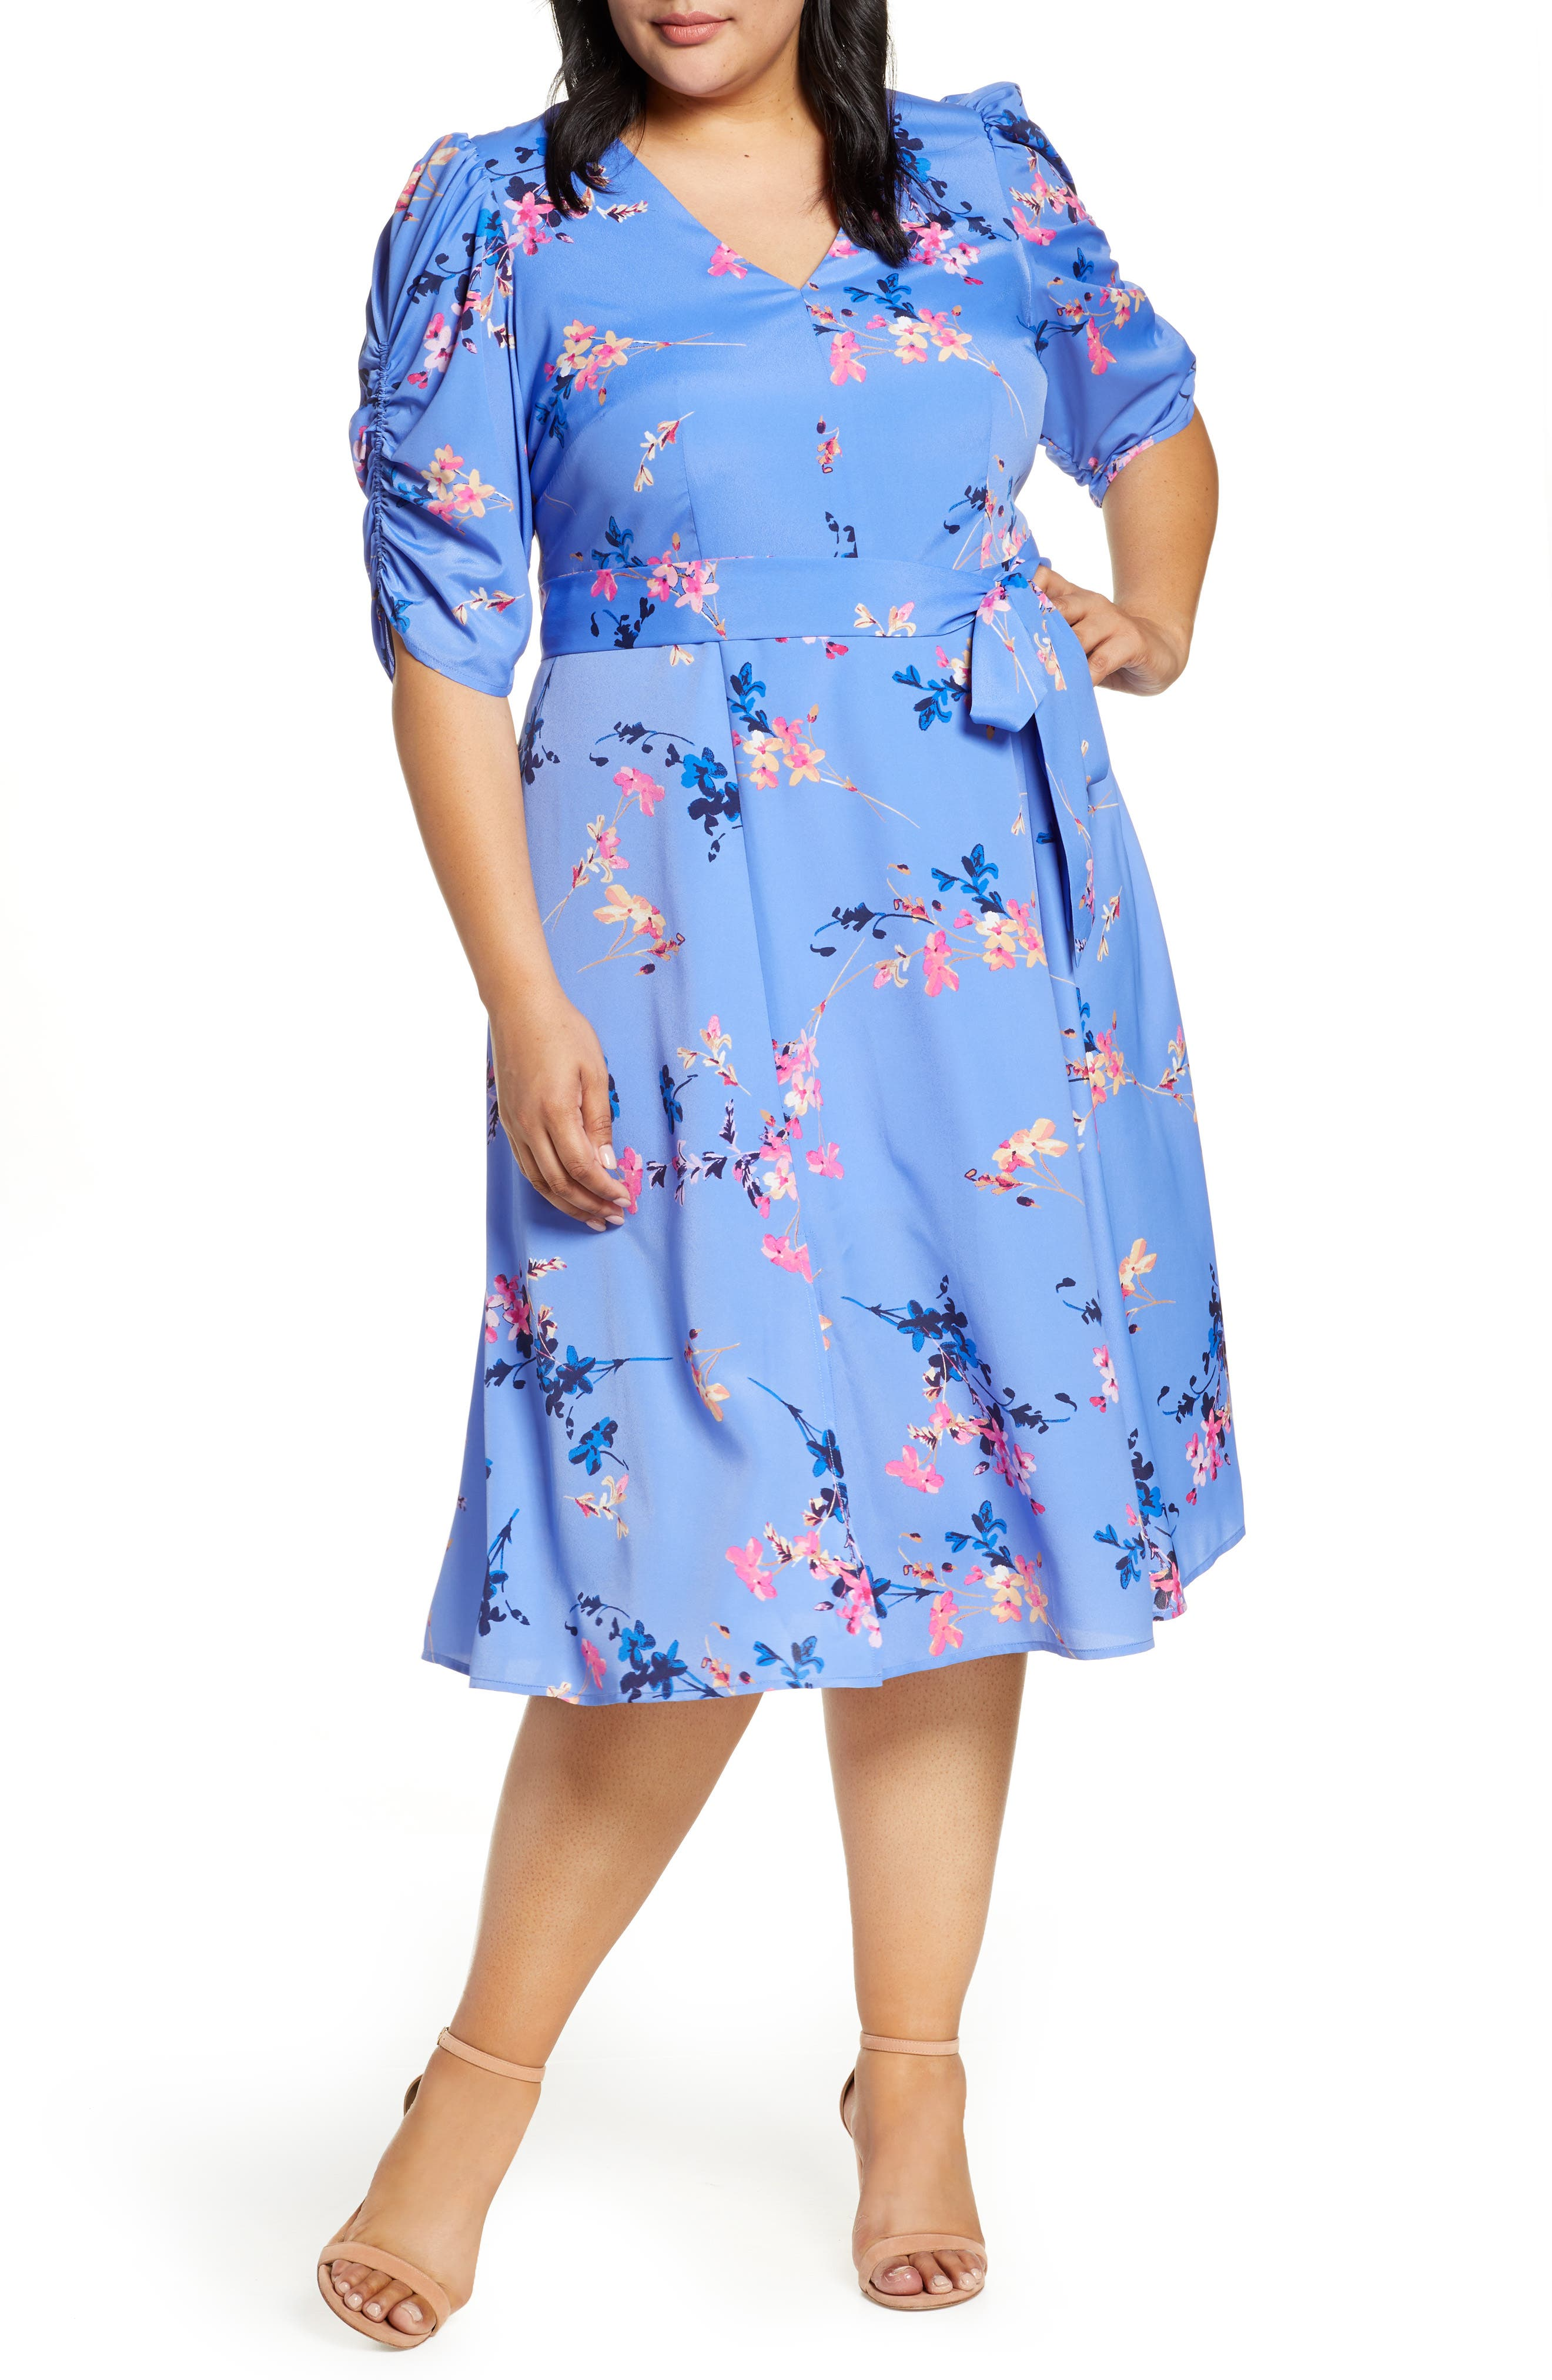 1940s Plus Size Fashion: Style Advice from 1940s to Today Plus Size Womens Eliza J Print Fit  Flare Dress Size 14W - Blue $100.80 AT vintagedancer.com